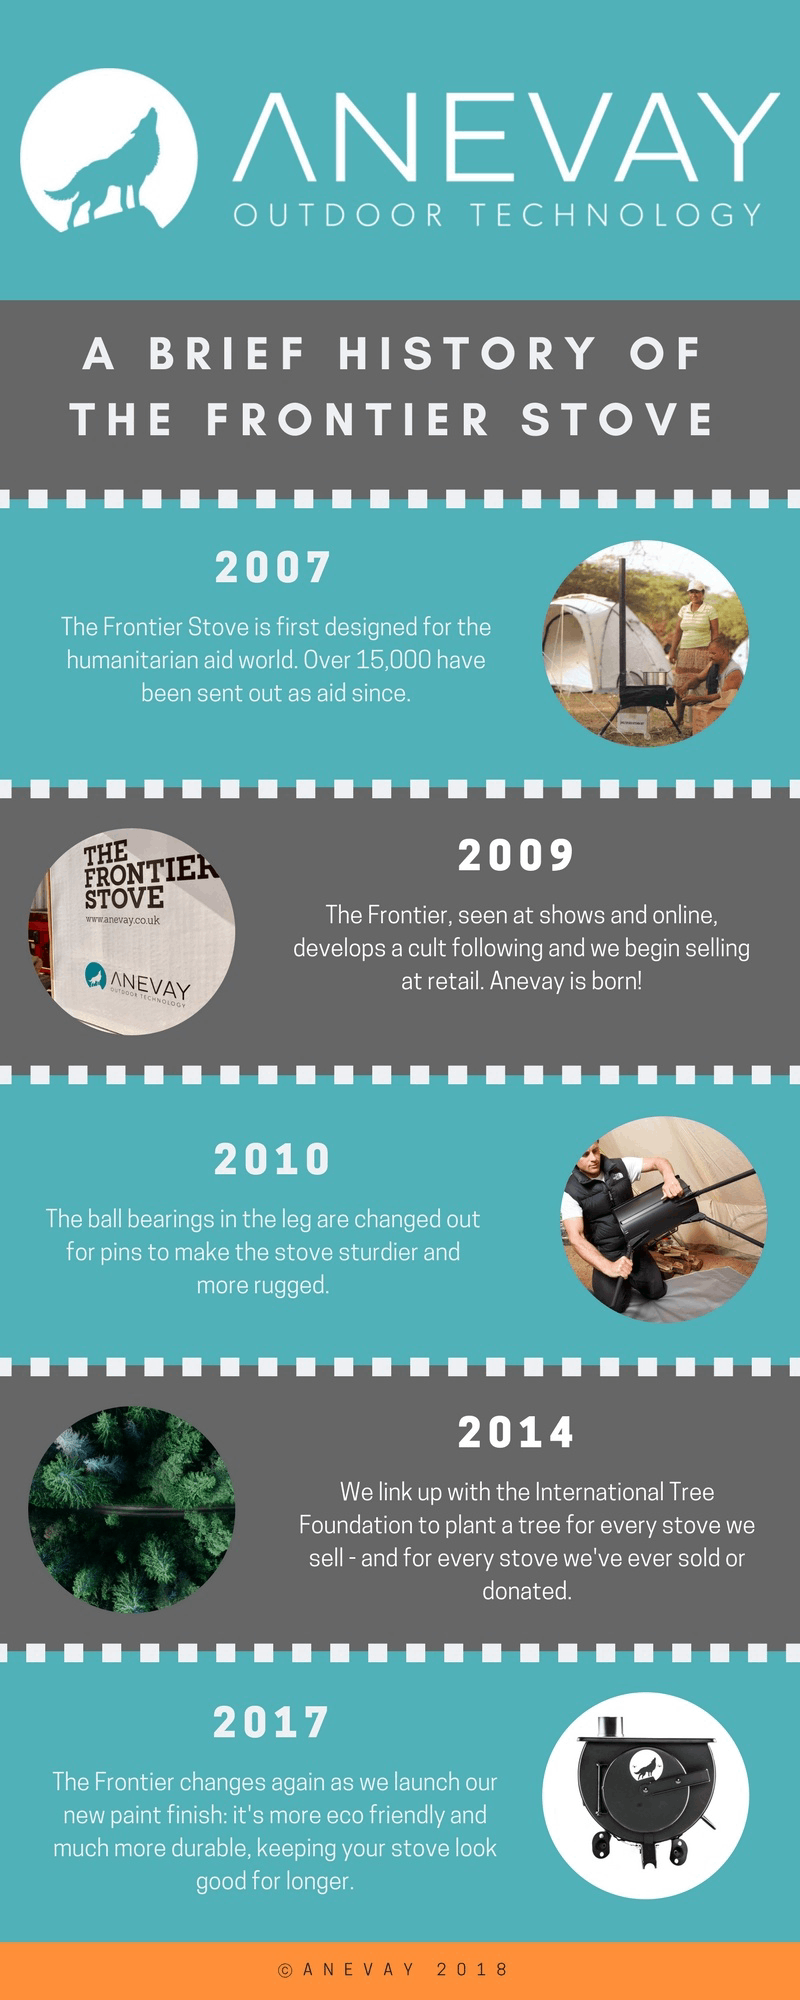 A Brief History of the Frontier Stove